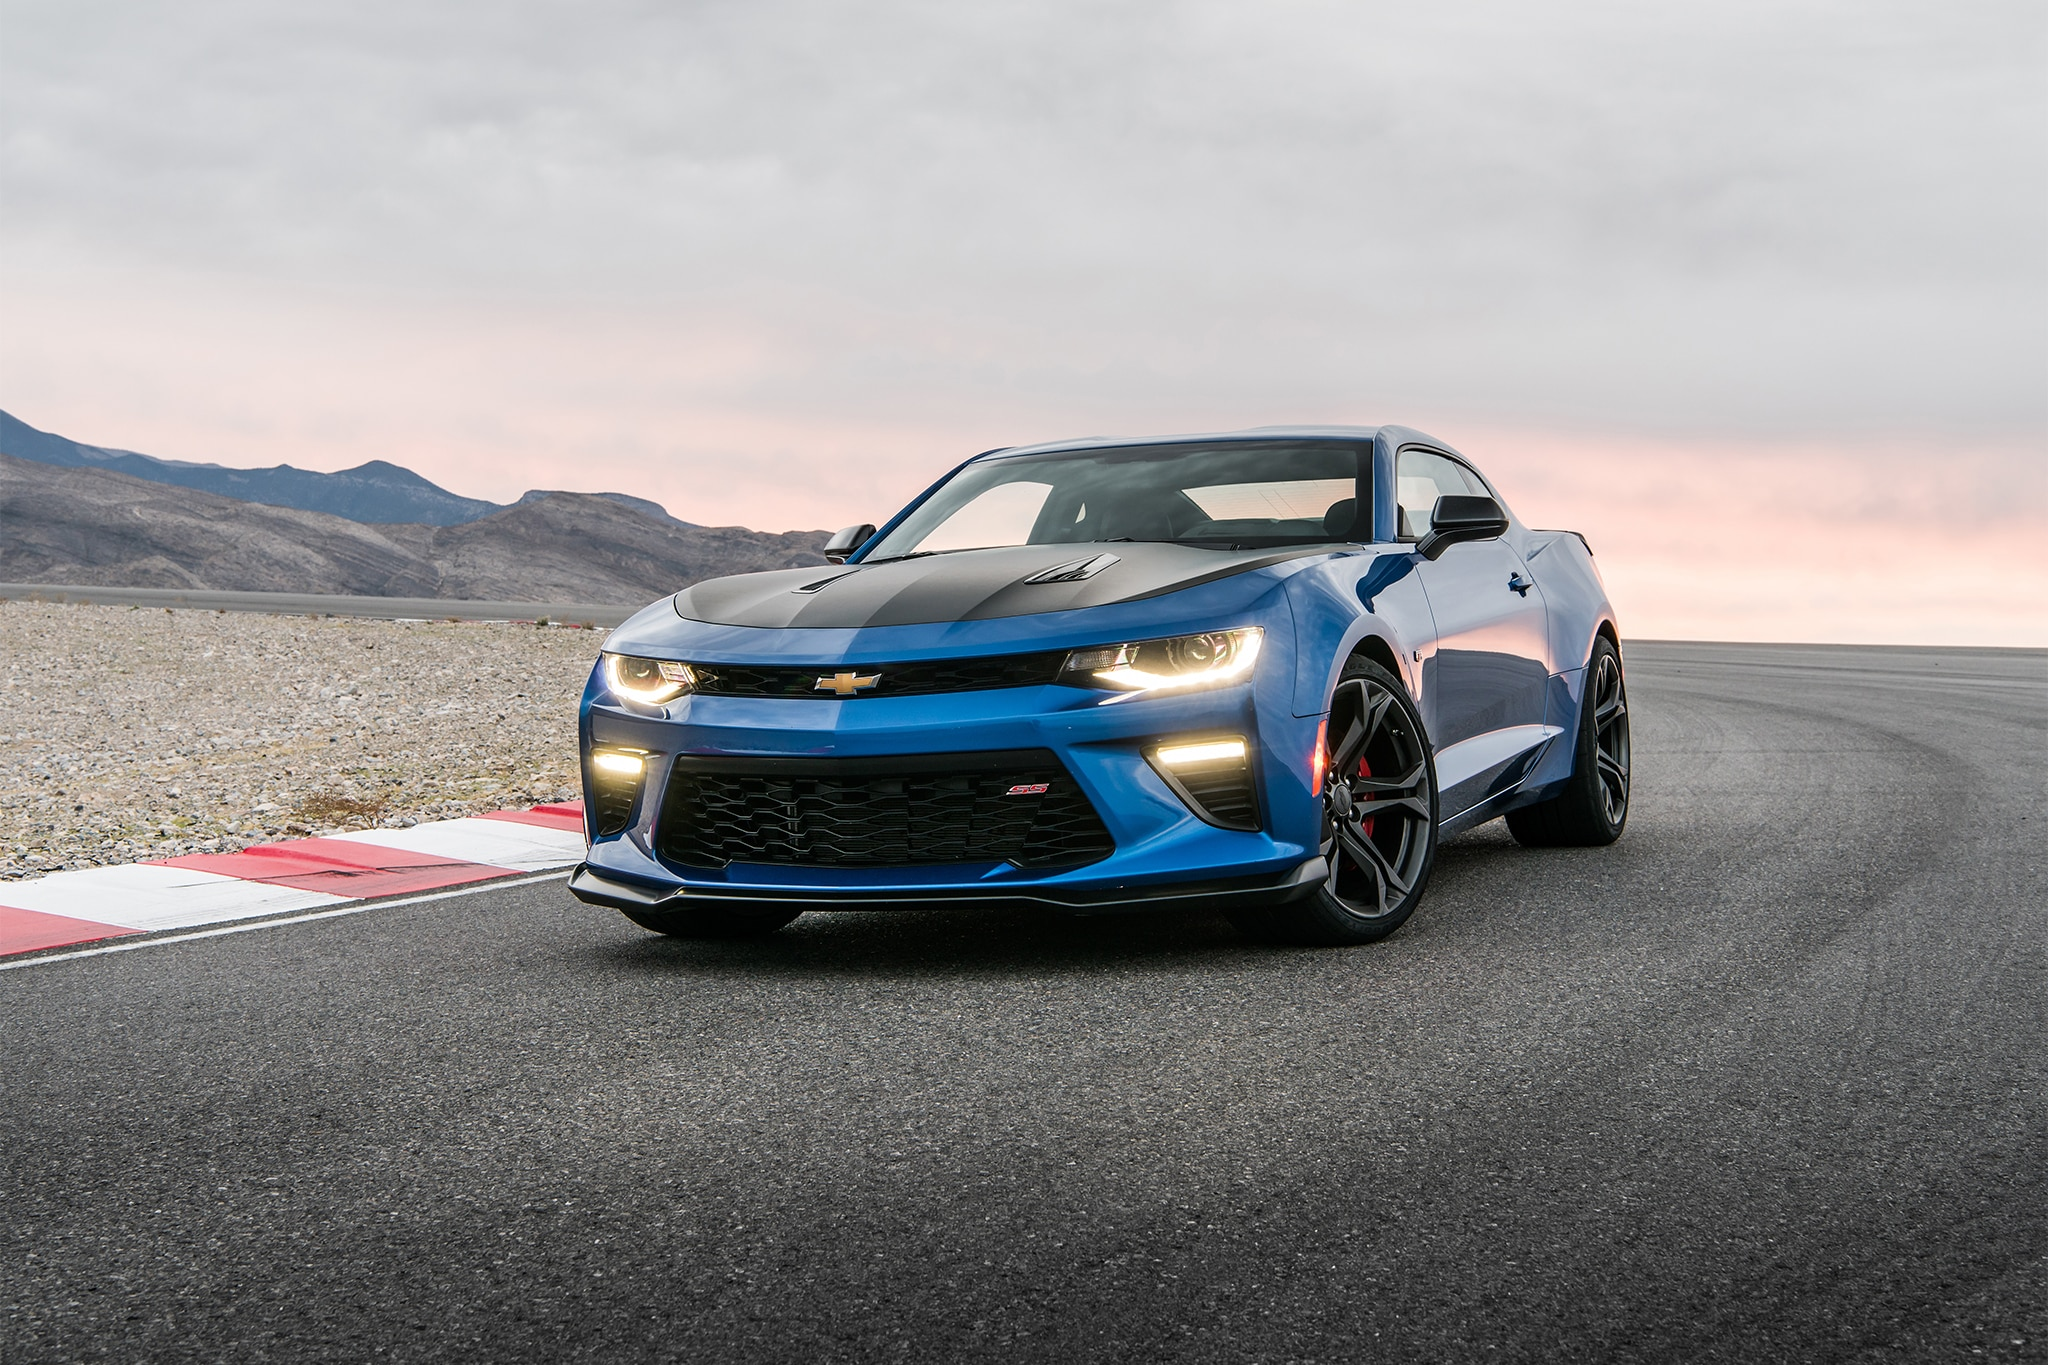 2017 Camaro: 1LE Performance Packages | Chevrolet